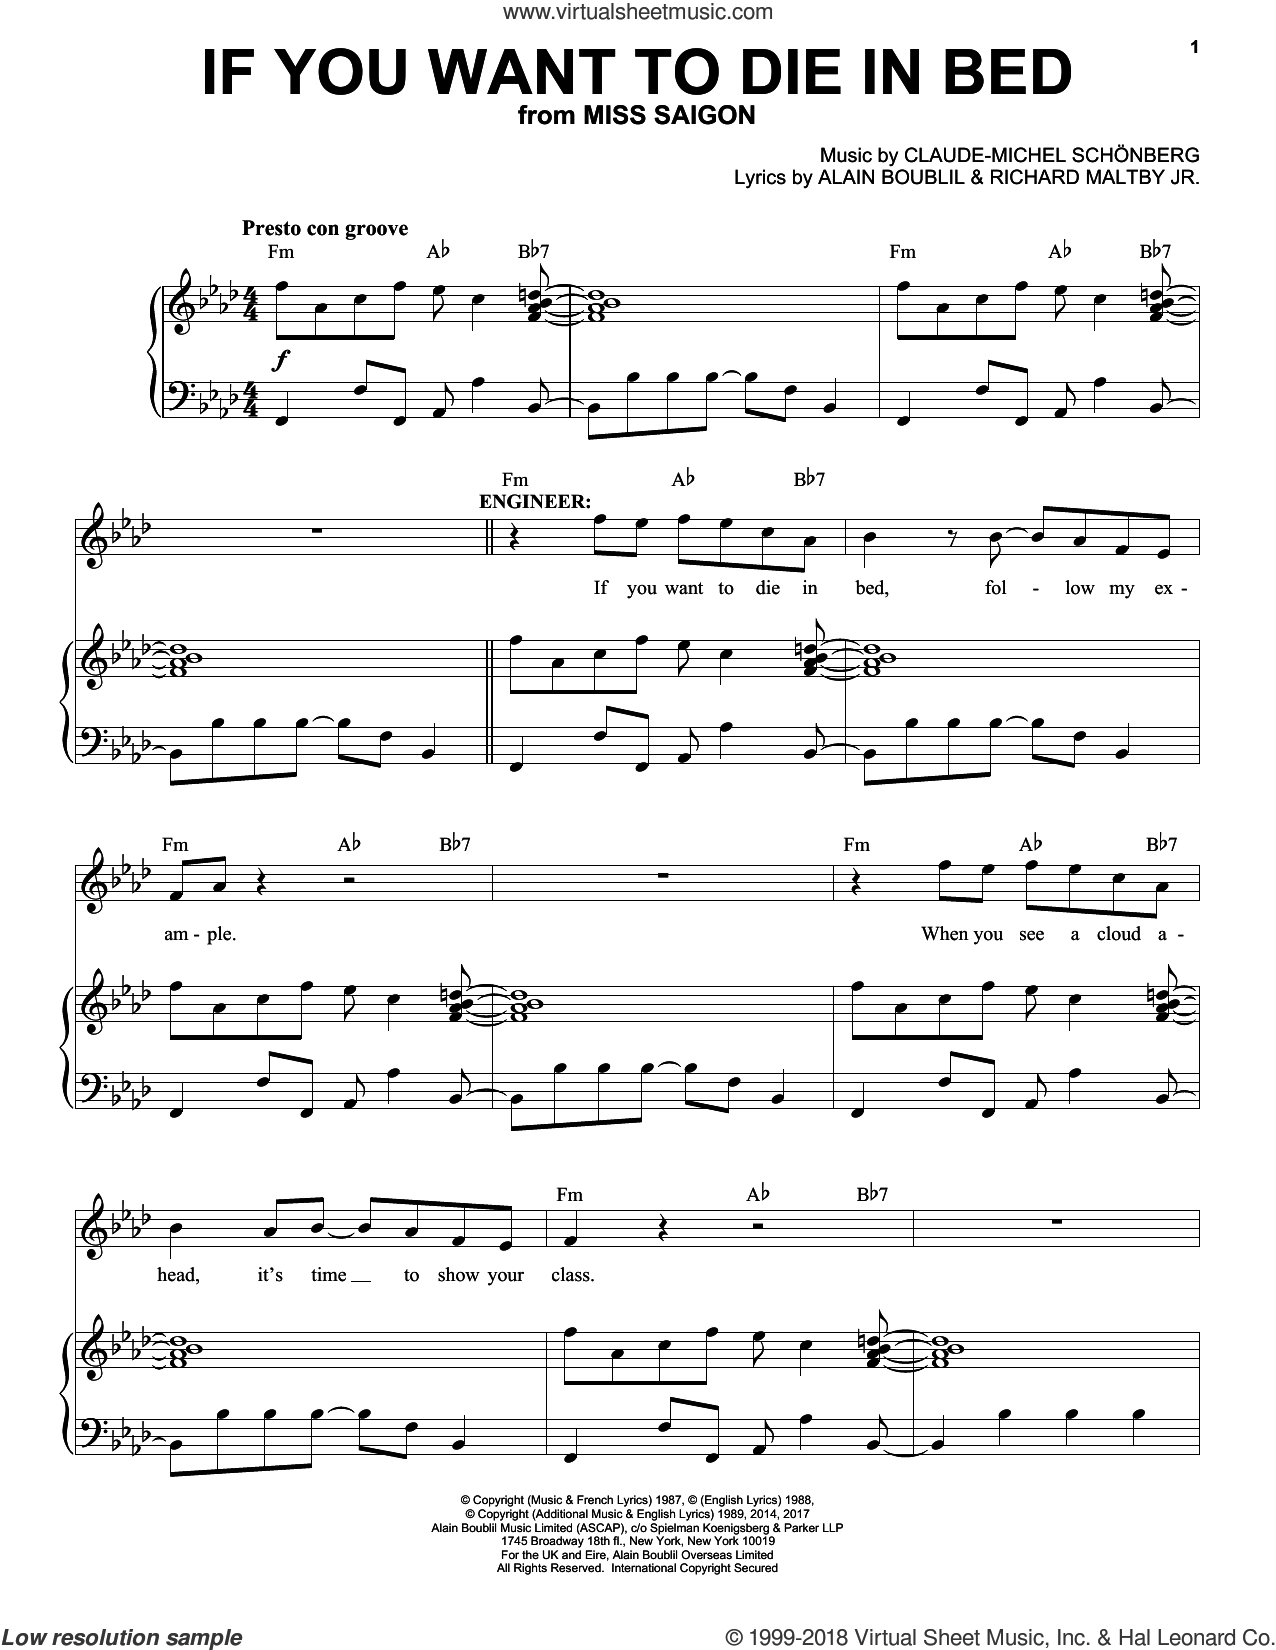 If You Want To Die In Bed sheet music for voice and piano by Richard Maltby, Jr., Alain Boublil, Claude-Michel Schonberg and Michel LeGrand. Score Image Preview.